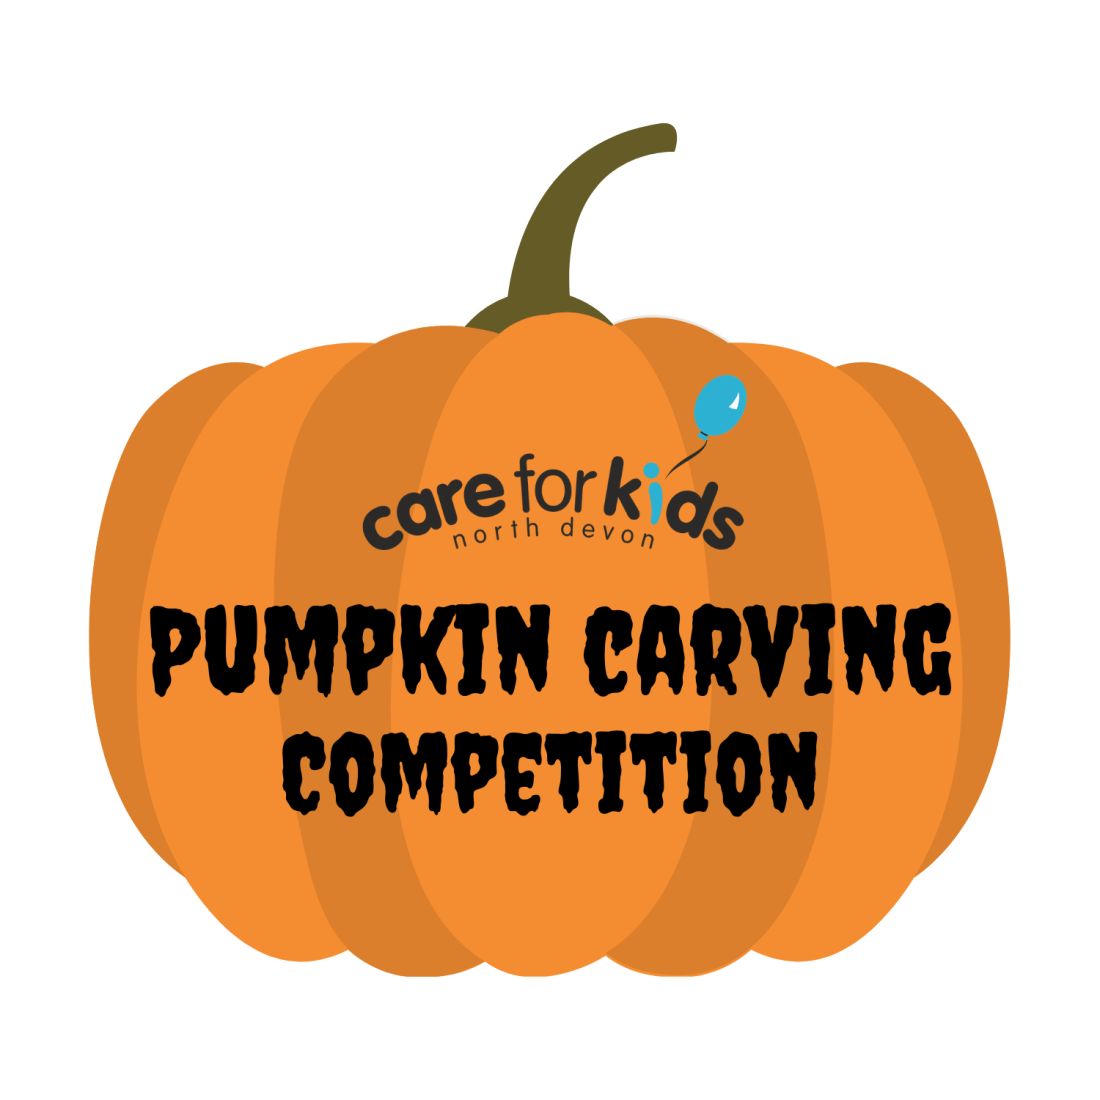 Pumpkin carving competition logo